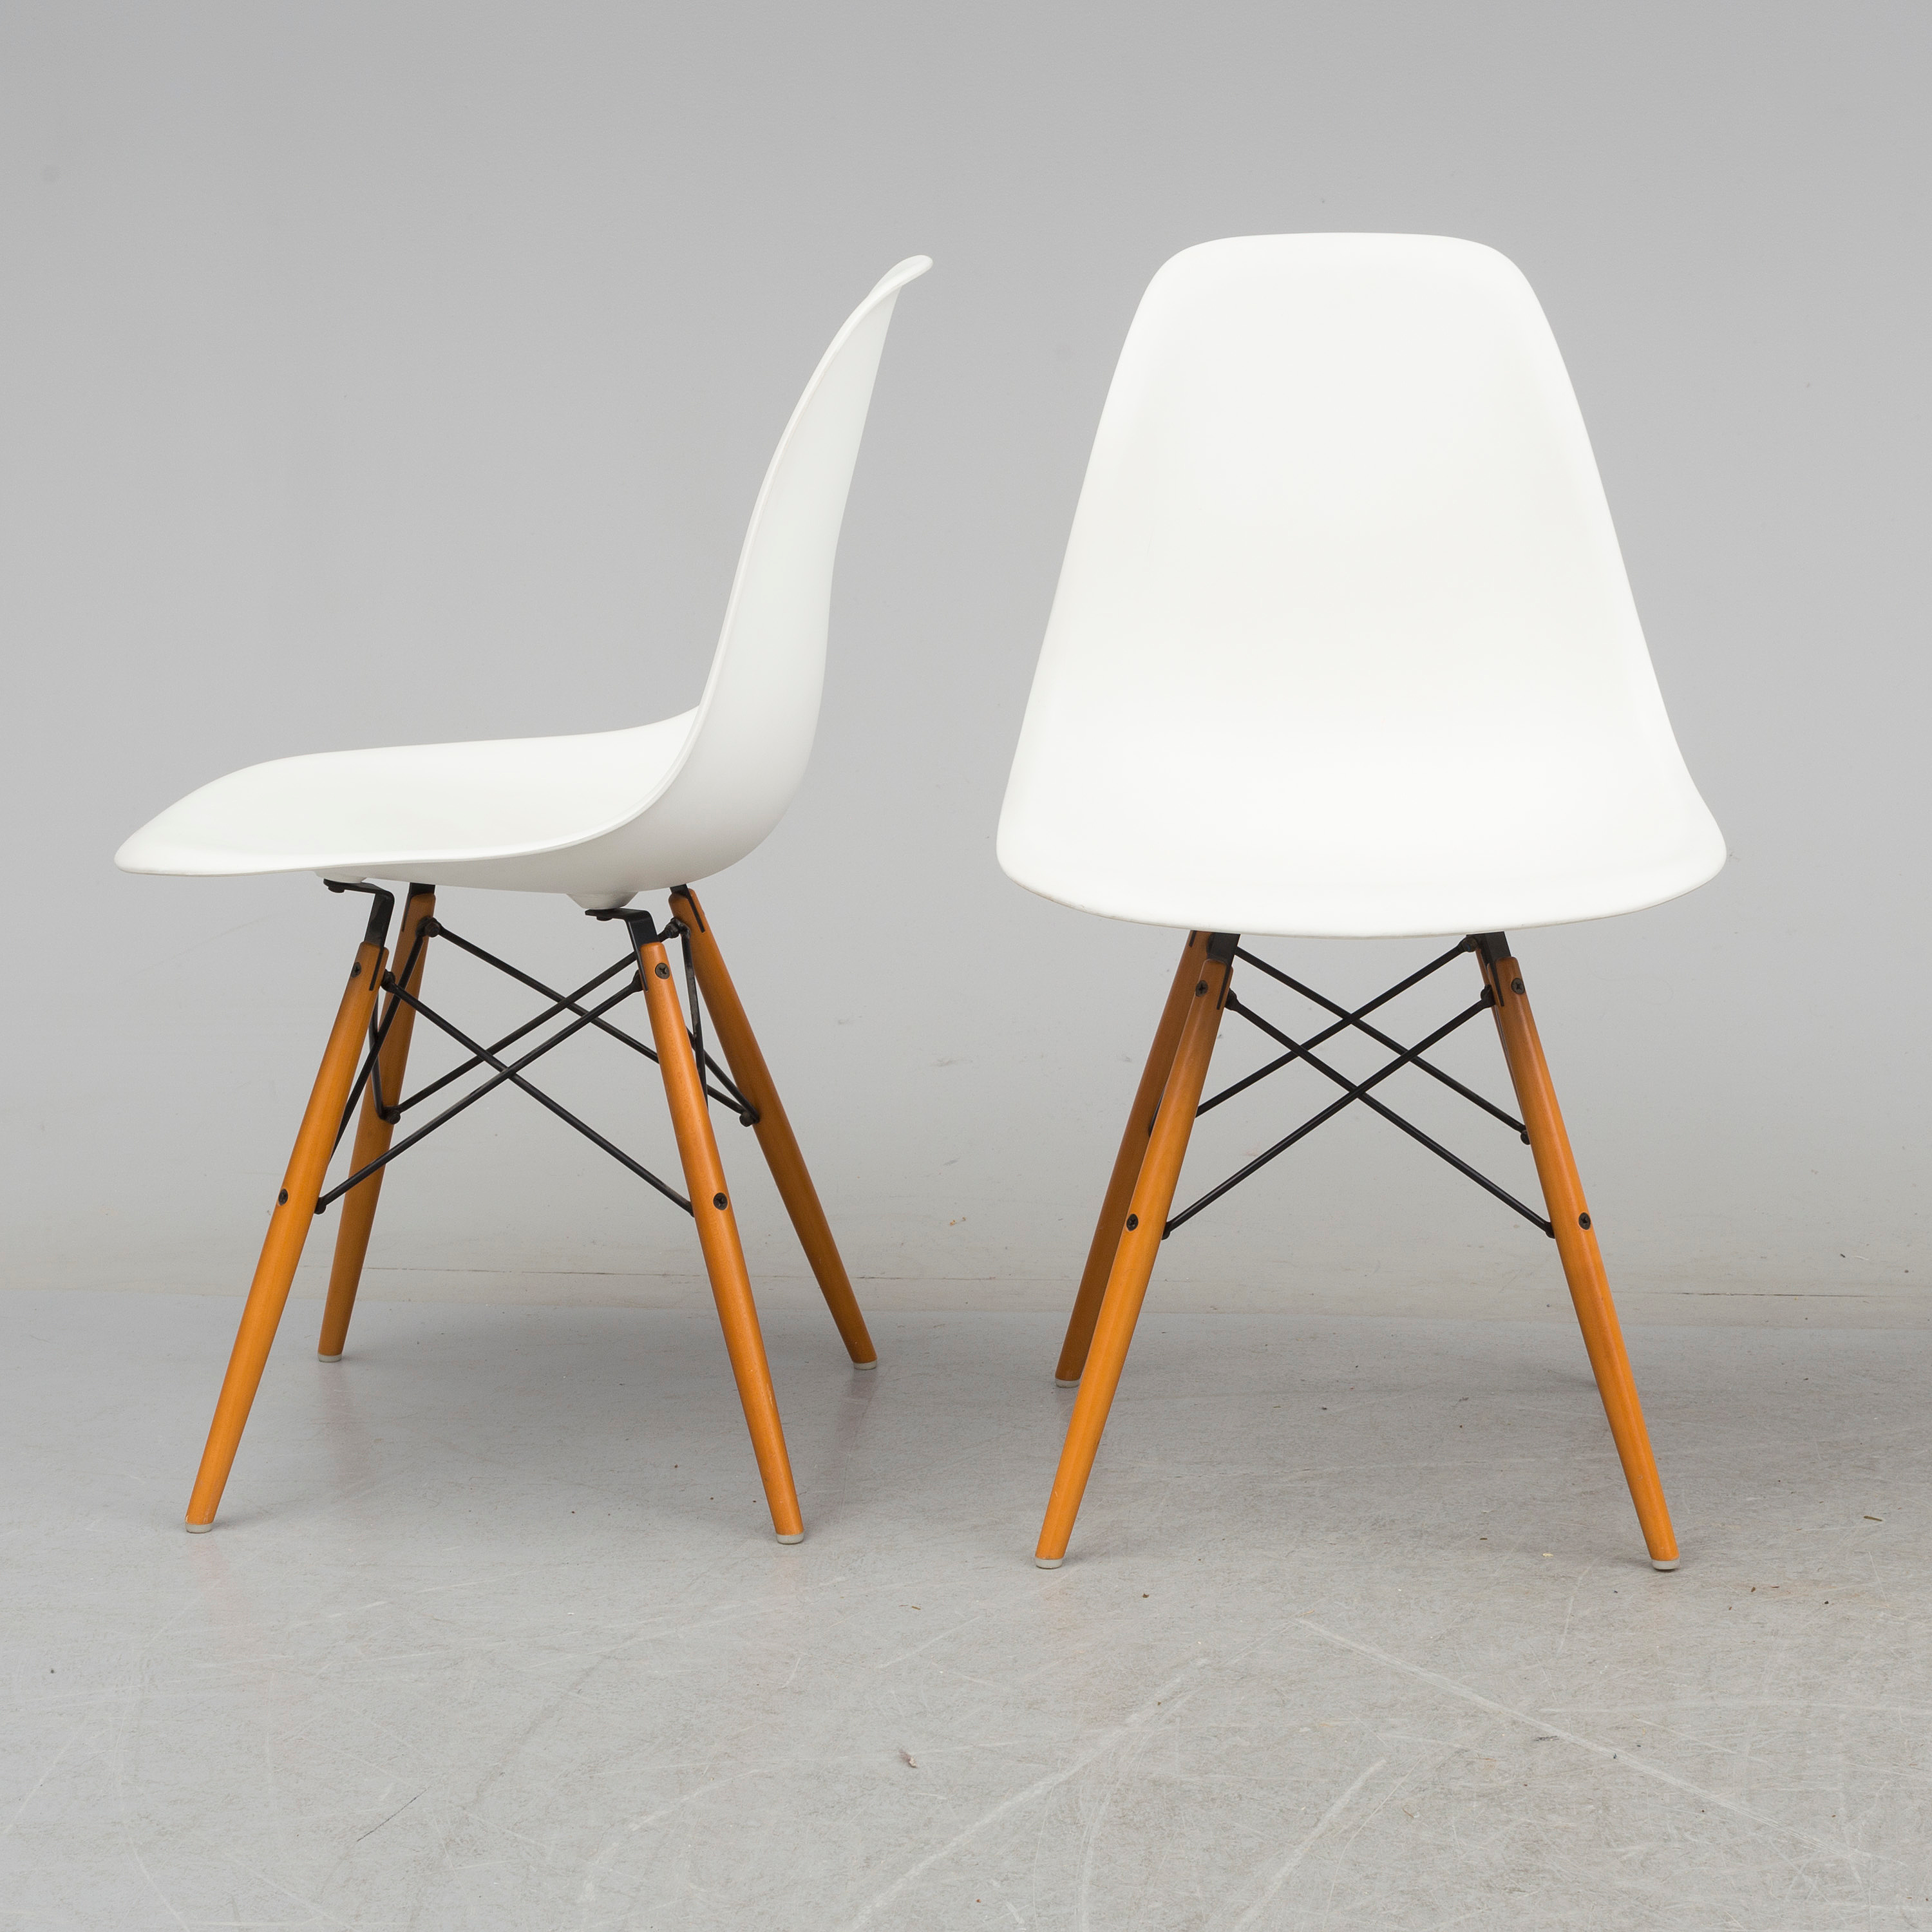 Dsw Eames Stuhl Charles & Ray Eames, Four 'eames Plastic Chair Dsw' From Vitra, 2003. - Bukowskis